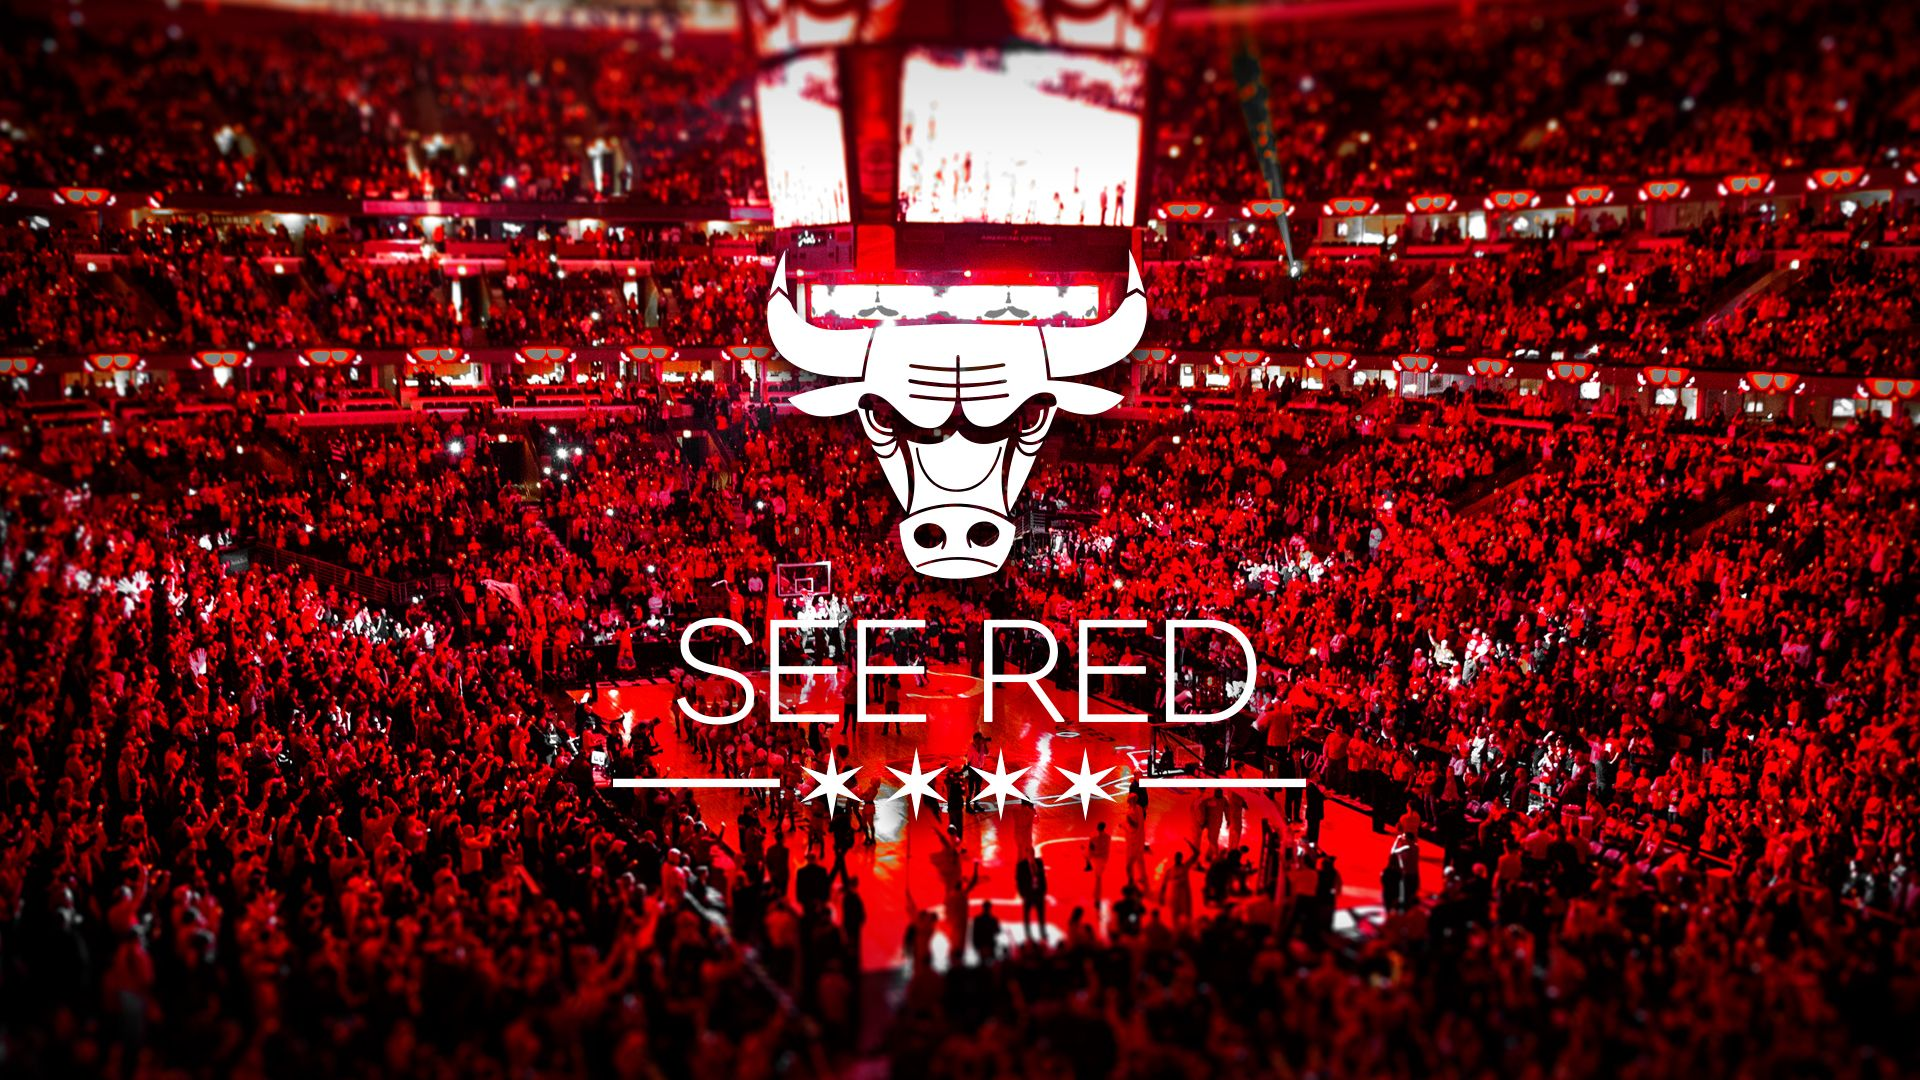 Pin By Philip Roth On Chicago Bulls Wallpapers Chicago Bulls Wallpaper Bulls Wallpaper Basketball Wallpaper